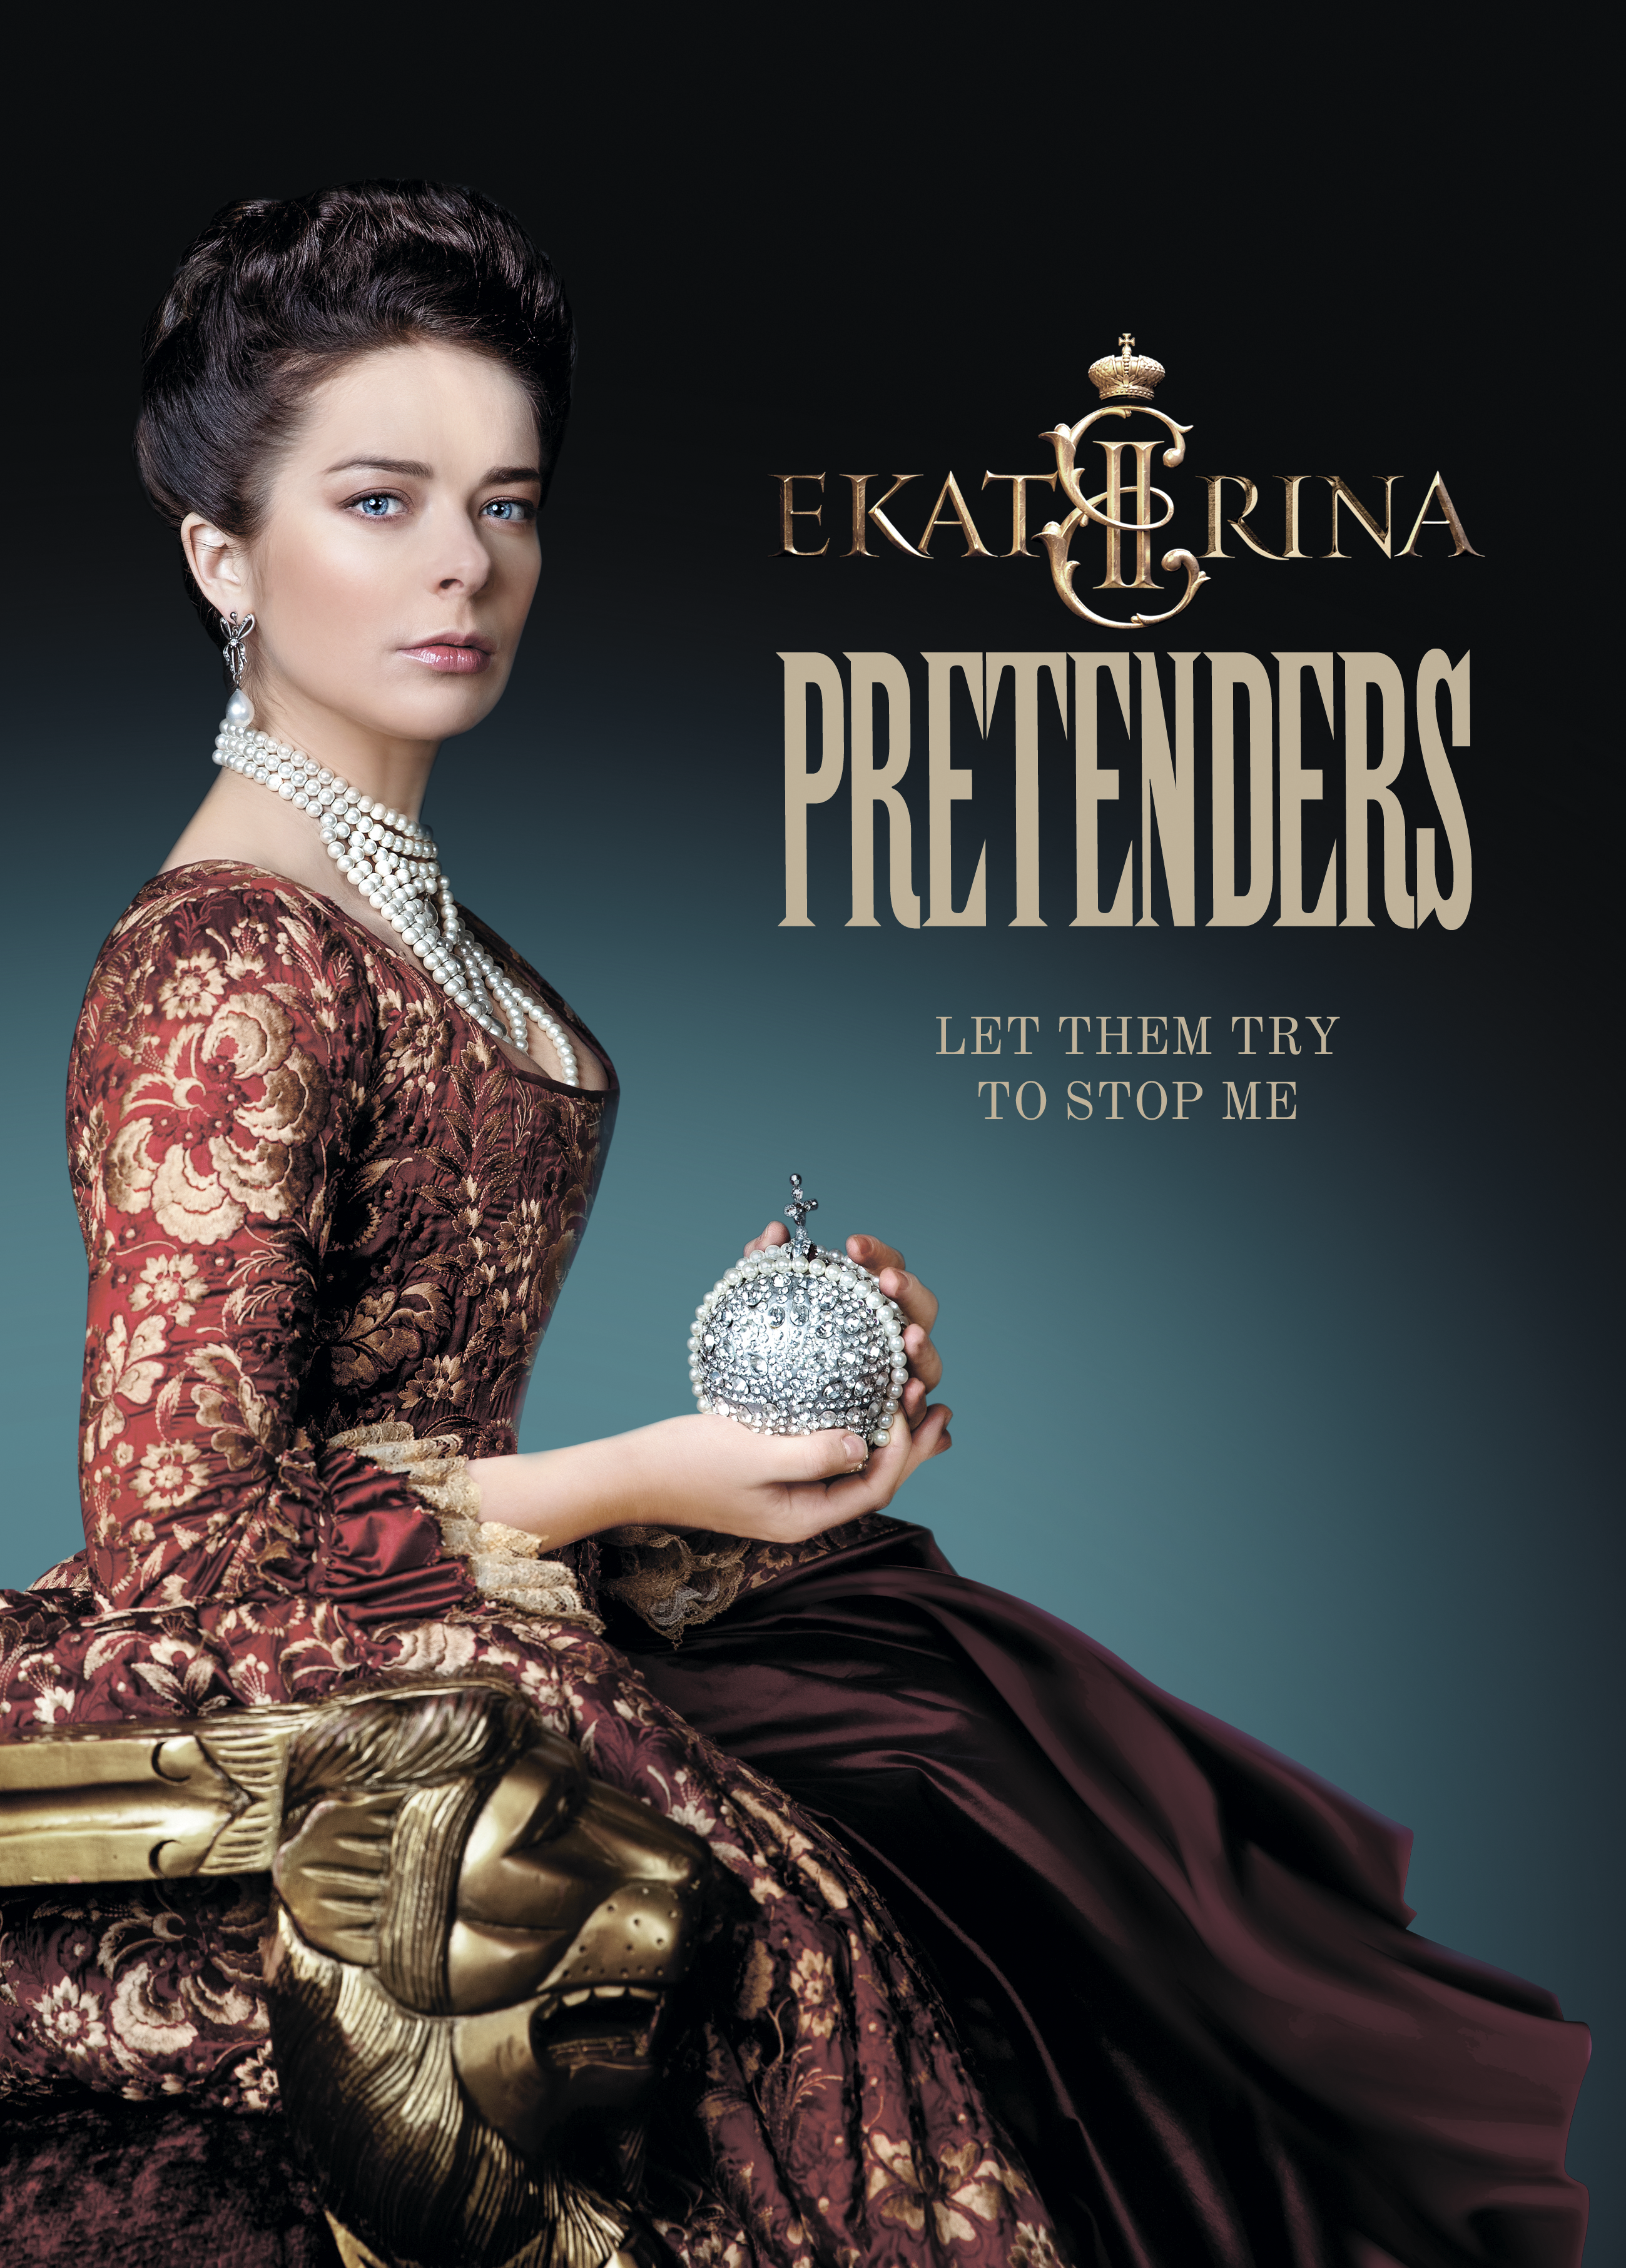 JAPANESE AIRLINES WILL SHOW «ANNA KARENINA» AND «EKATERINA»